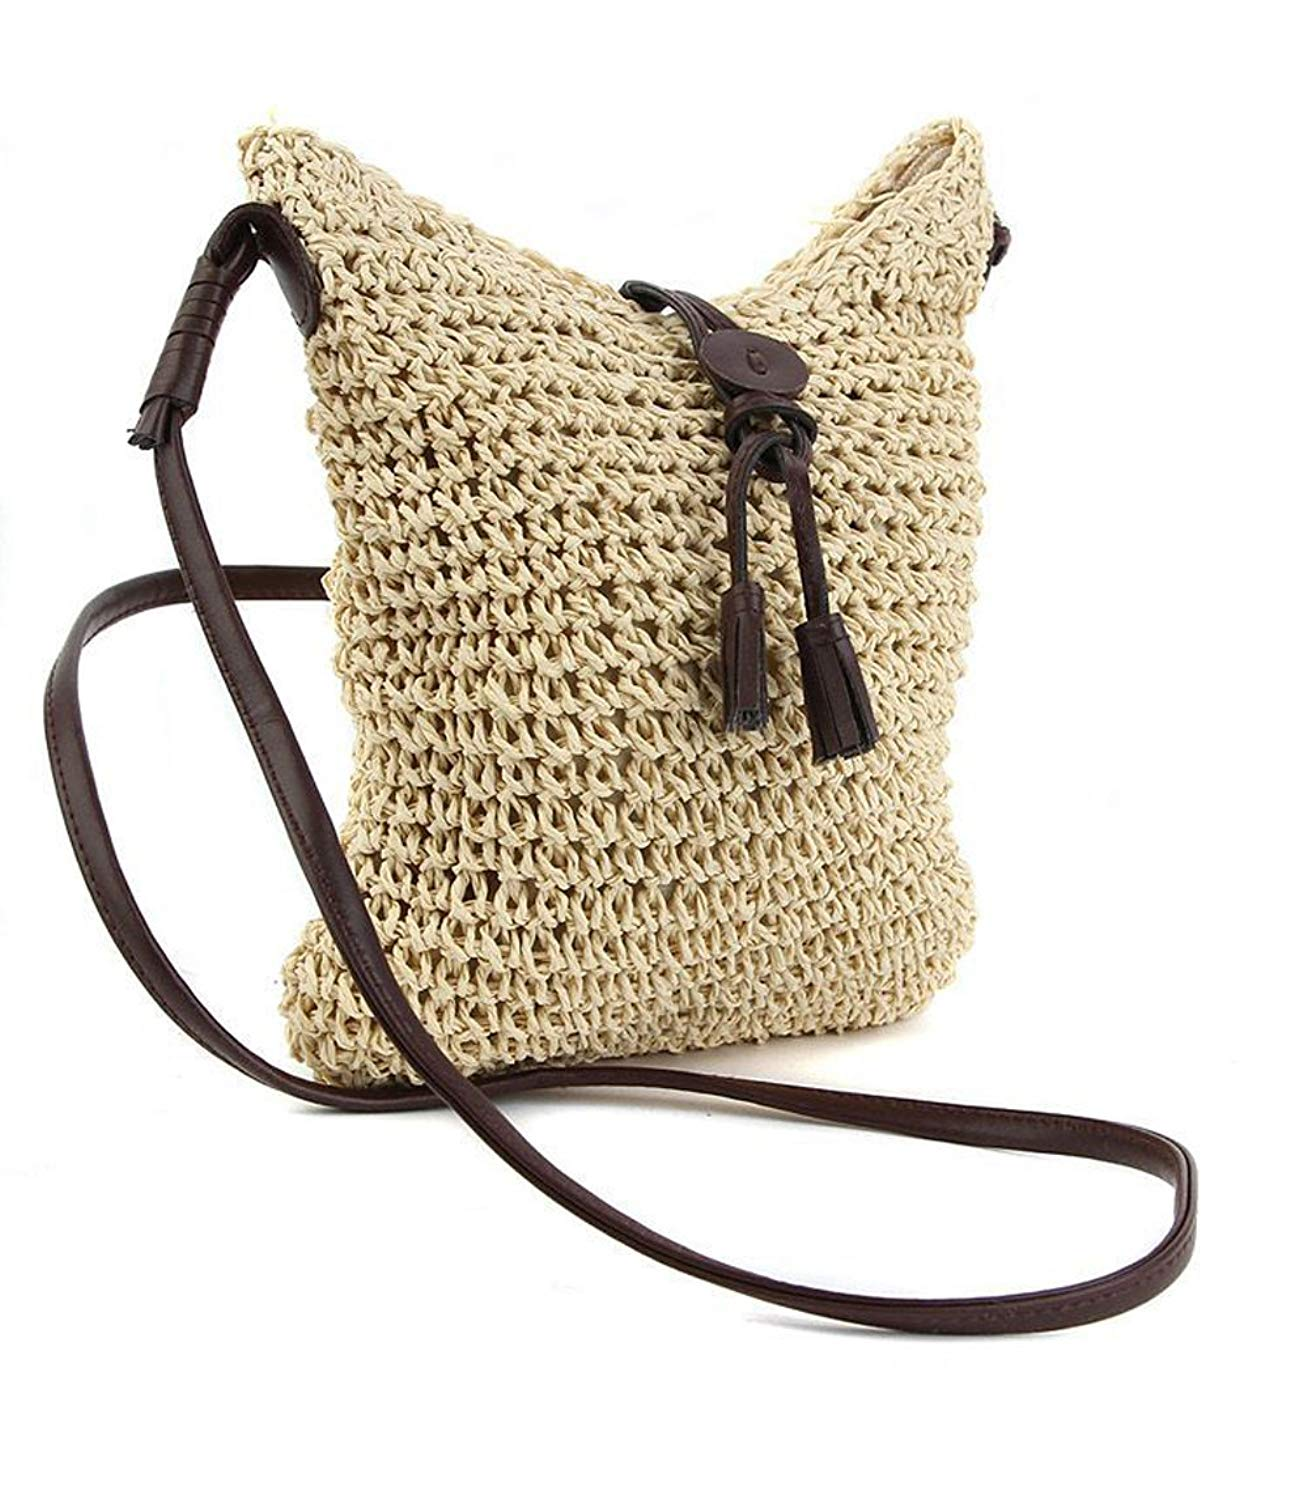 eb036971239a Get Quotations · Straw Crossbody Bag Womens Weave Shoulder Bag Summer Beach  Purse and Handbags